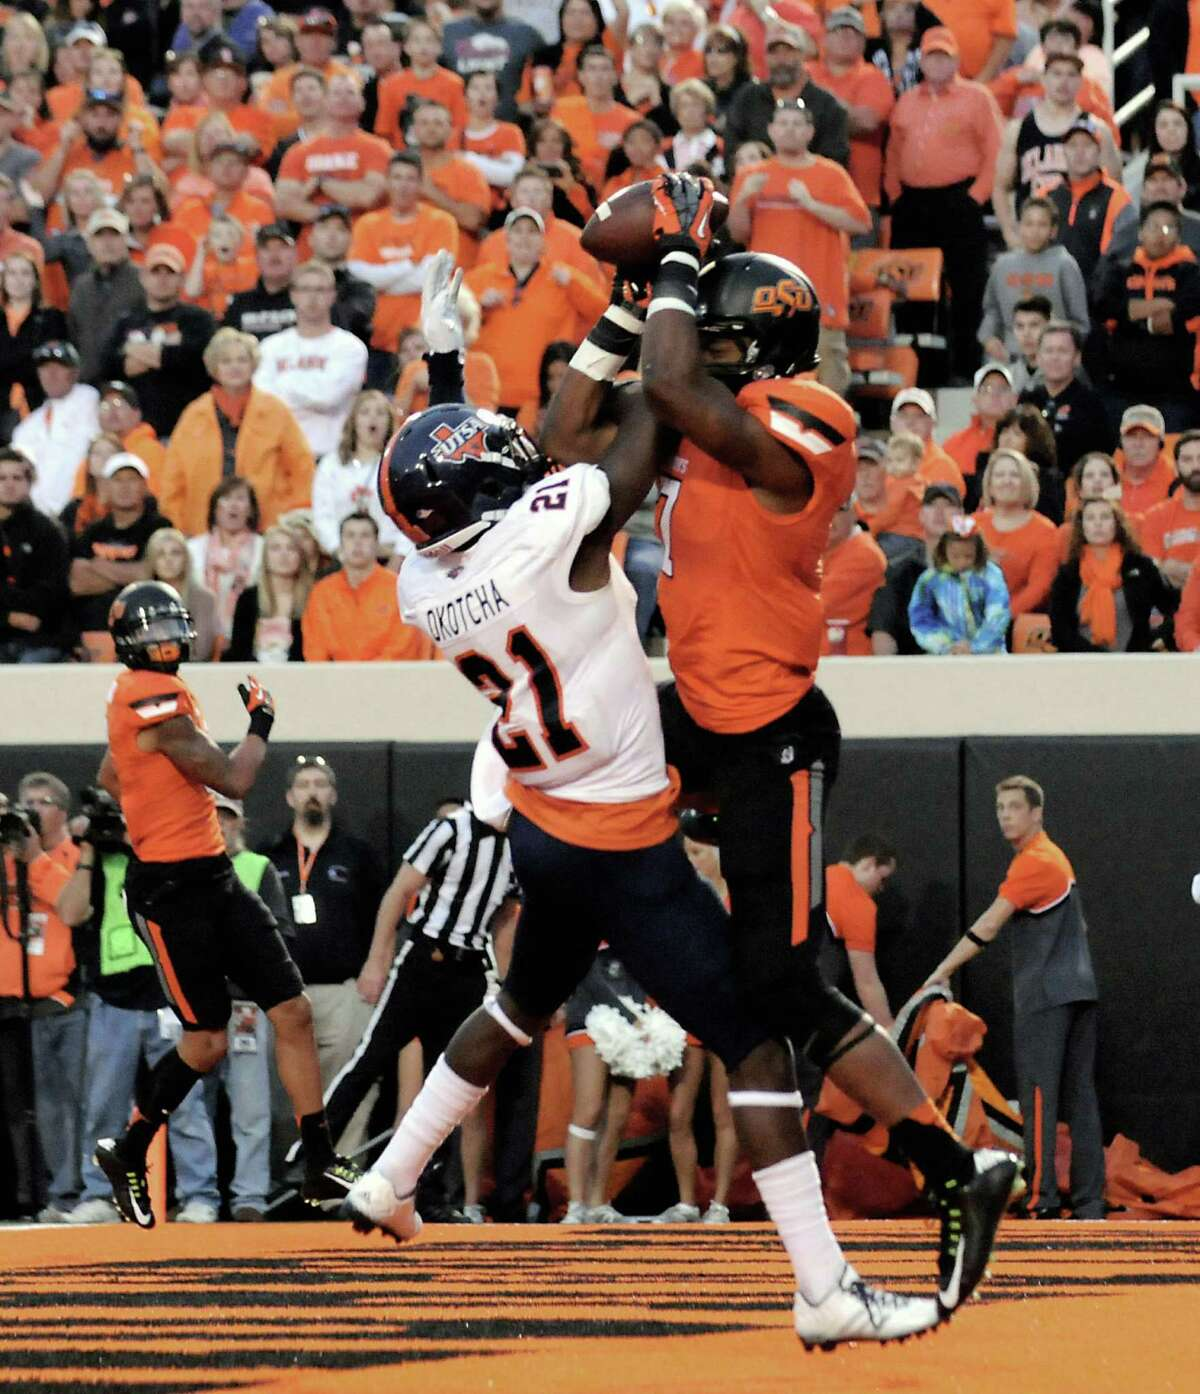 Oklahoma State wide receiver Brandon Sheperd, right, catches a touchdown despite the defensive efforts of UTSA cornerback Bennett Okotcha, during the first half of an NCAA college football game in Stillwater, Okla. Saturday, Sept. 13, 2014.